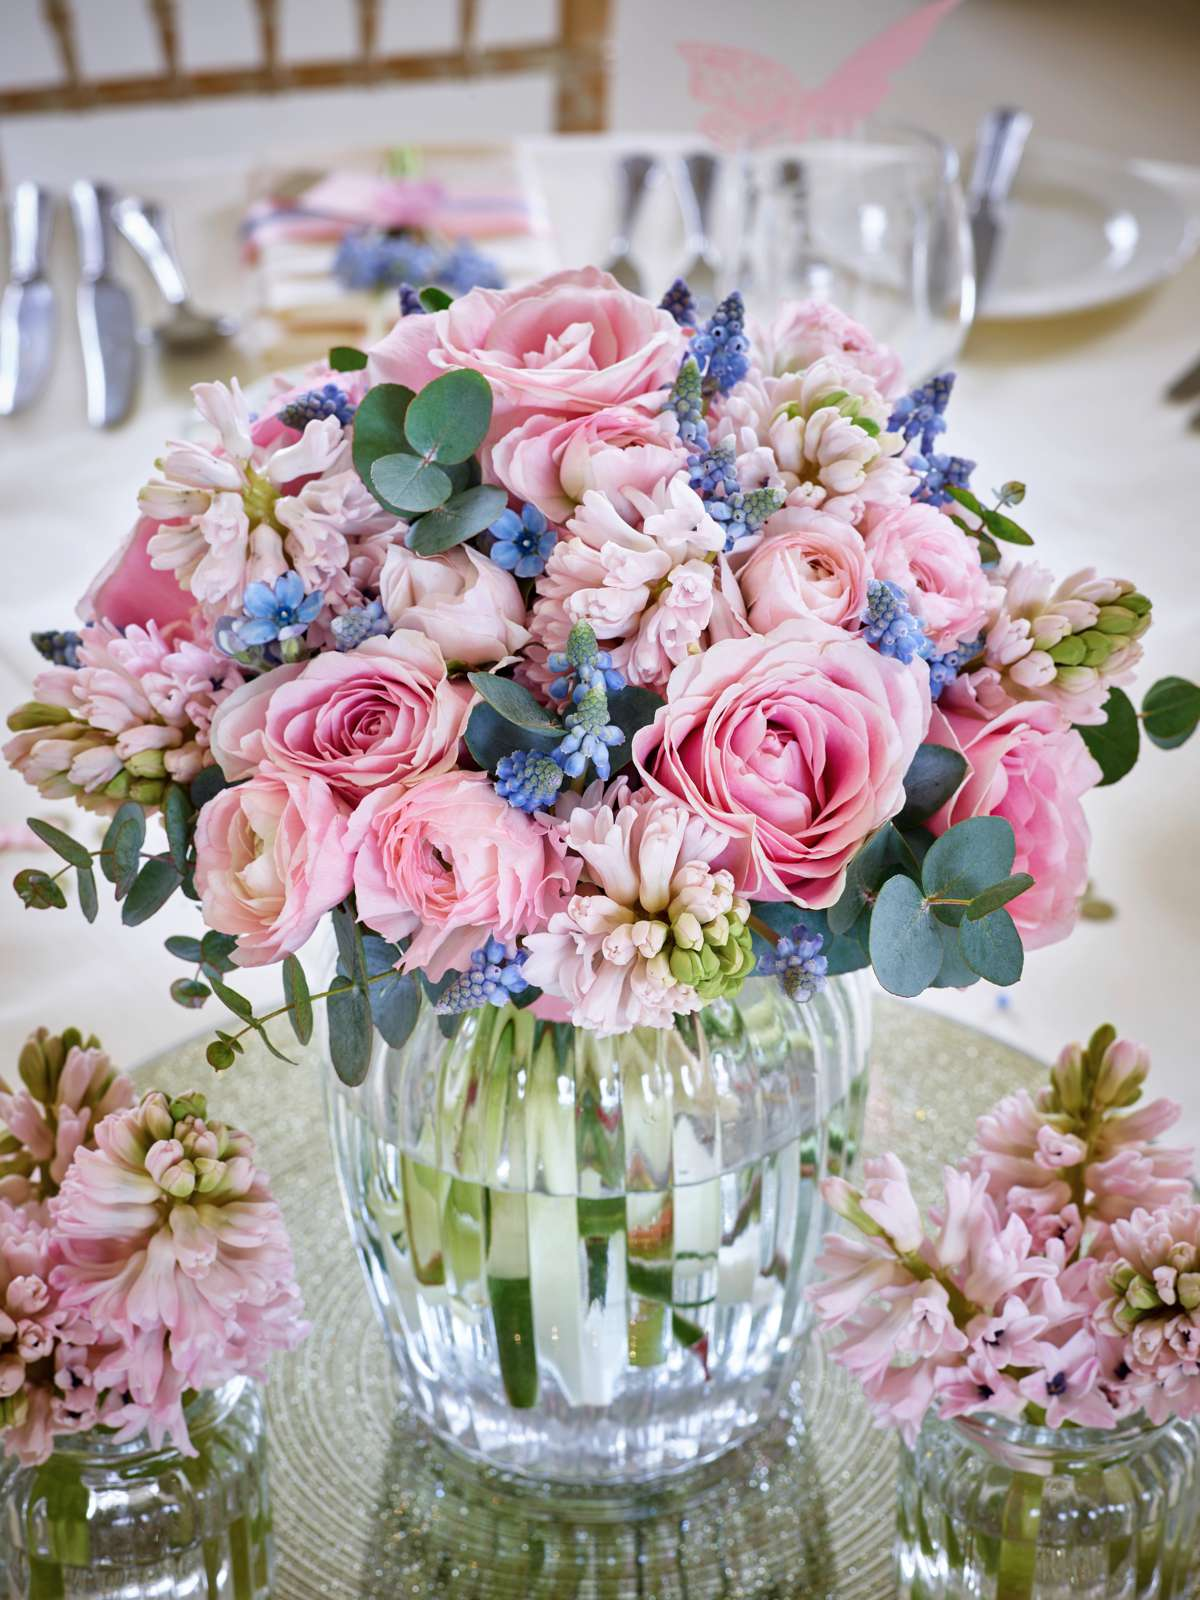 Interflora-Wedding-Inspired-Shoot-Rose-Quartz-Serenity-Decor-23